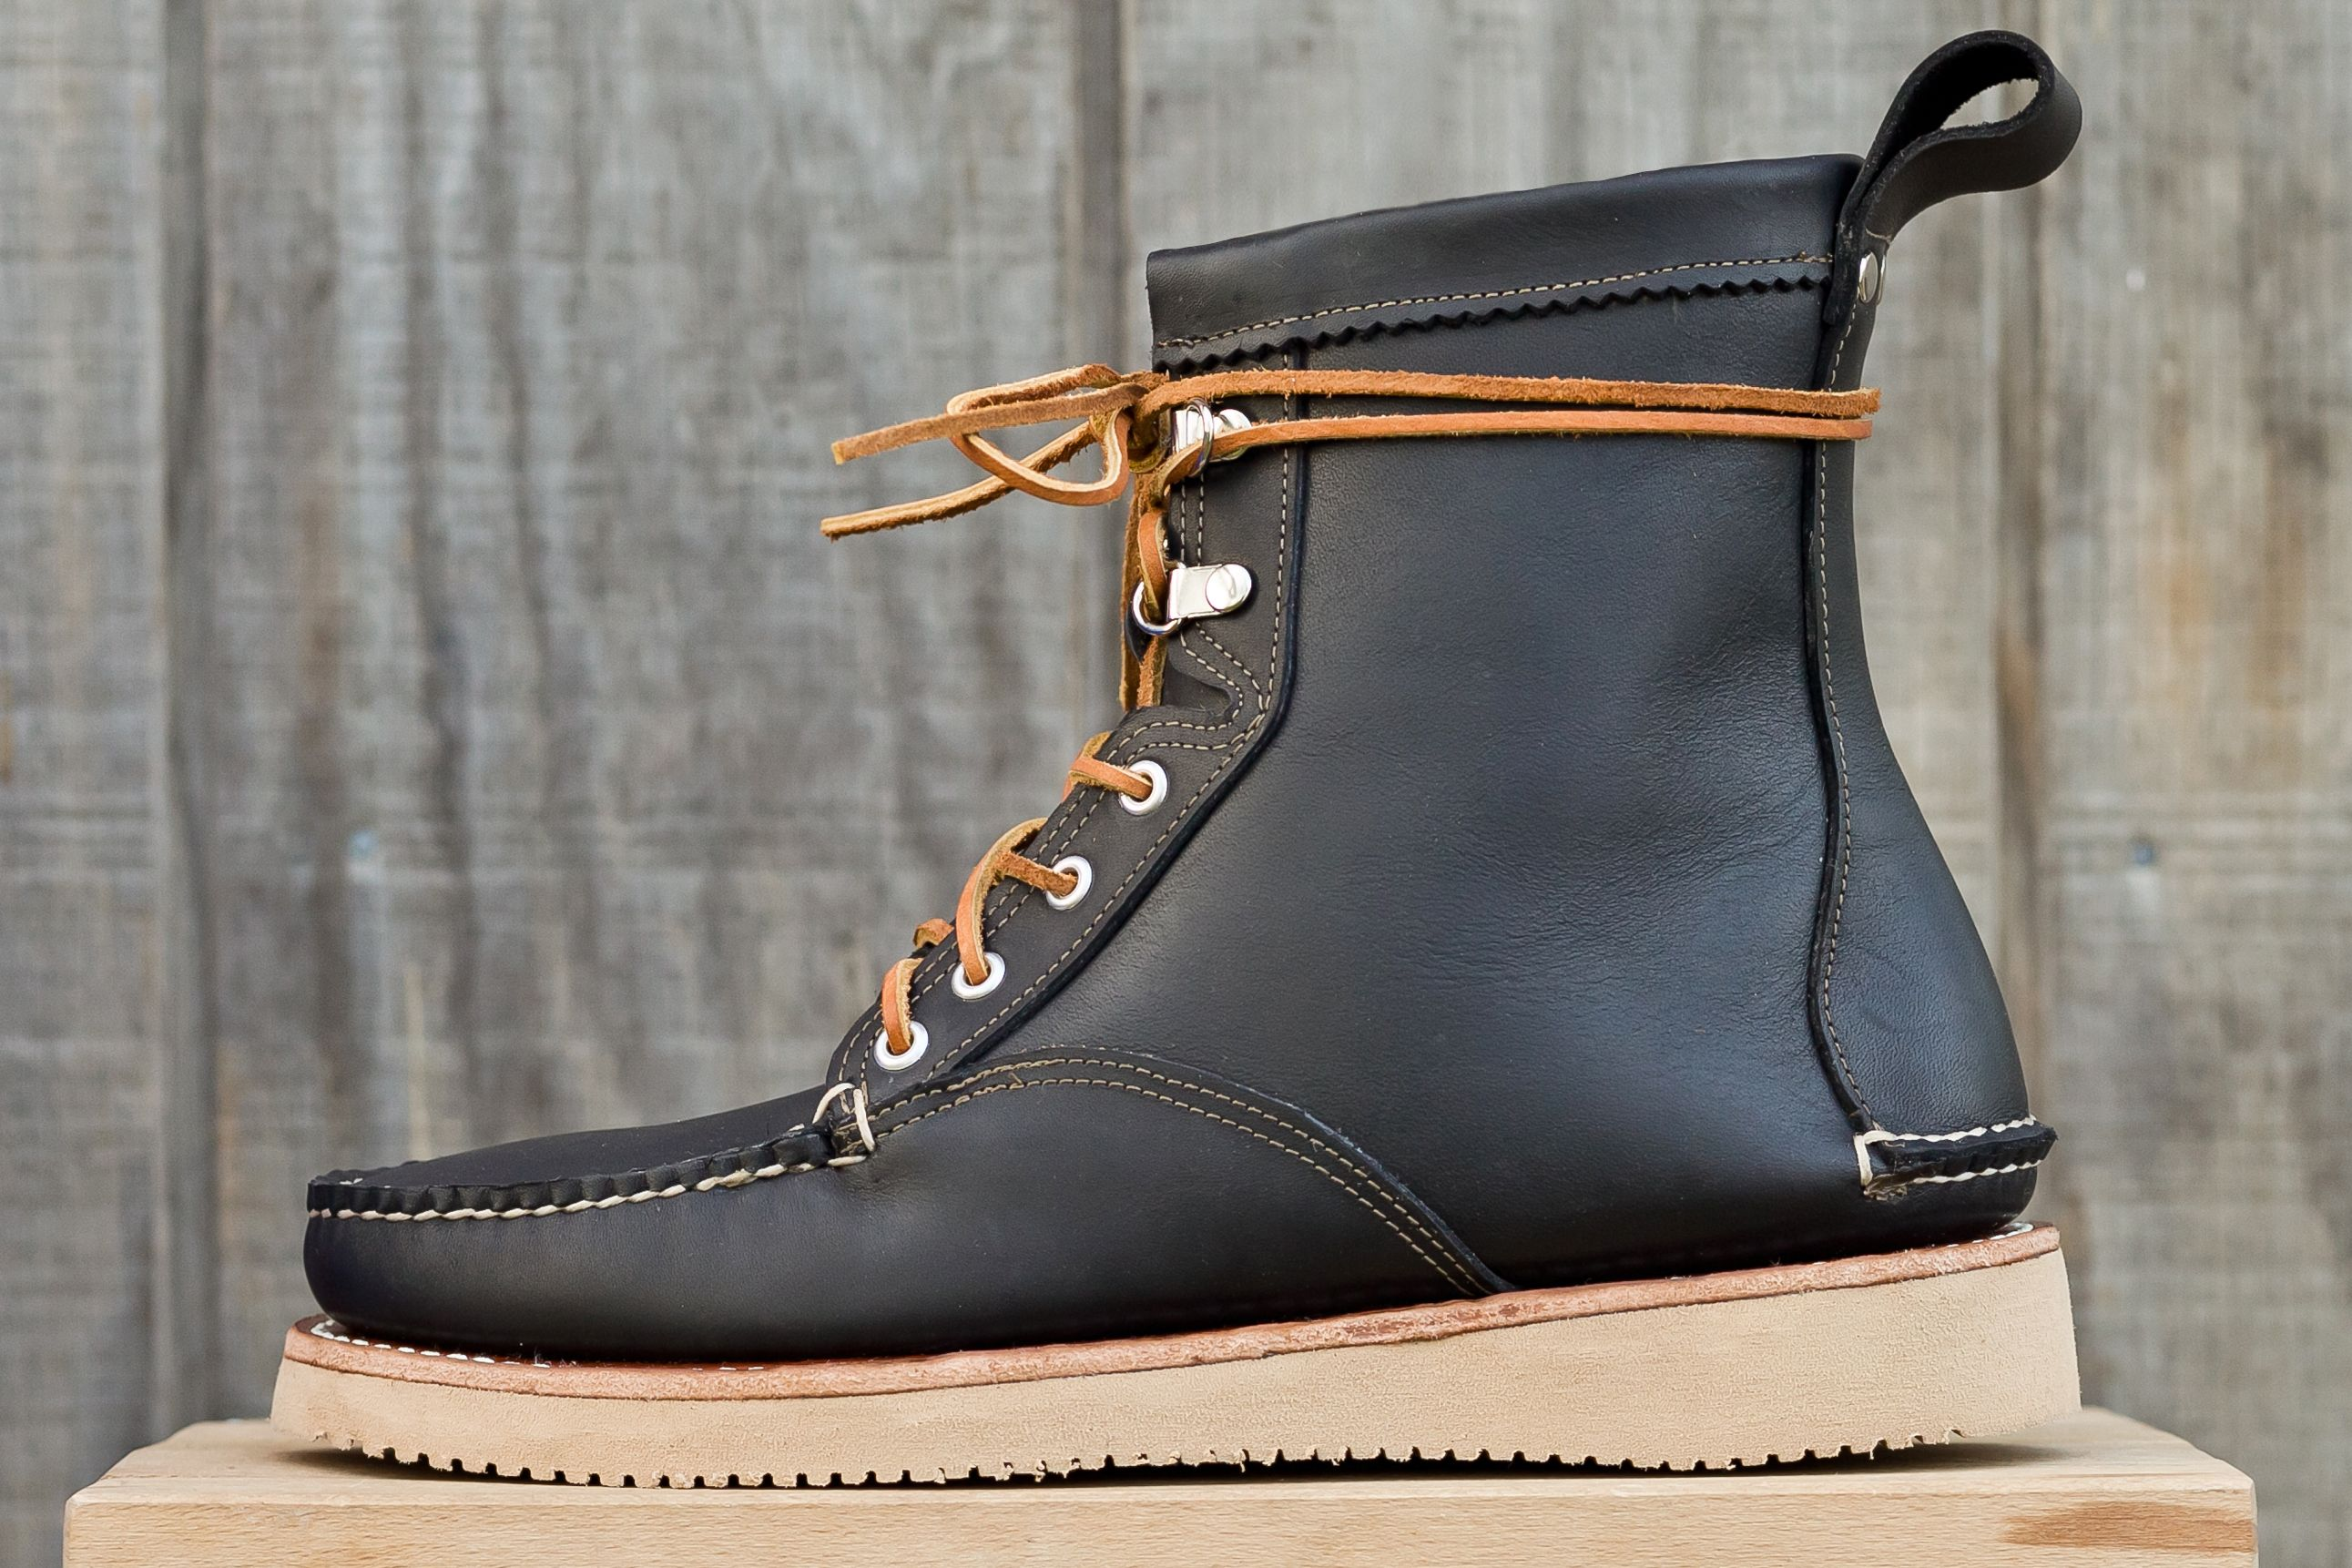 Horween Black Chromexel Fieldsmen boot, with Vibram 2021 Outsole. F/W 2012.